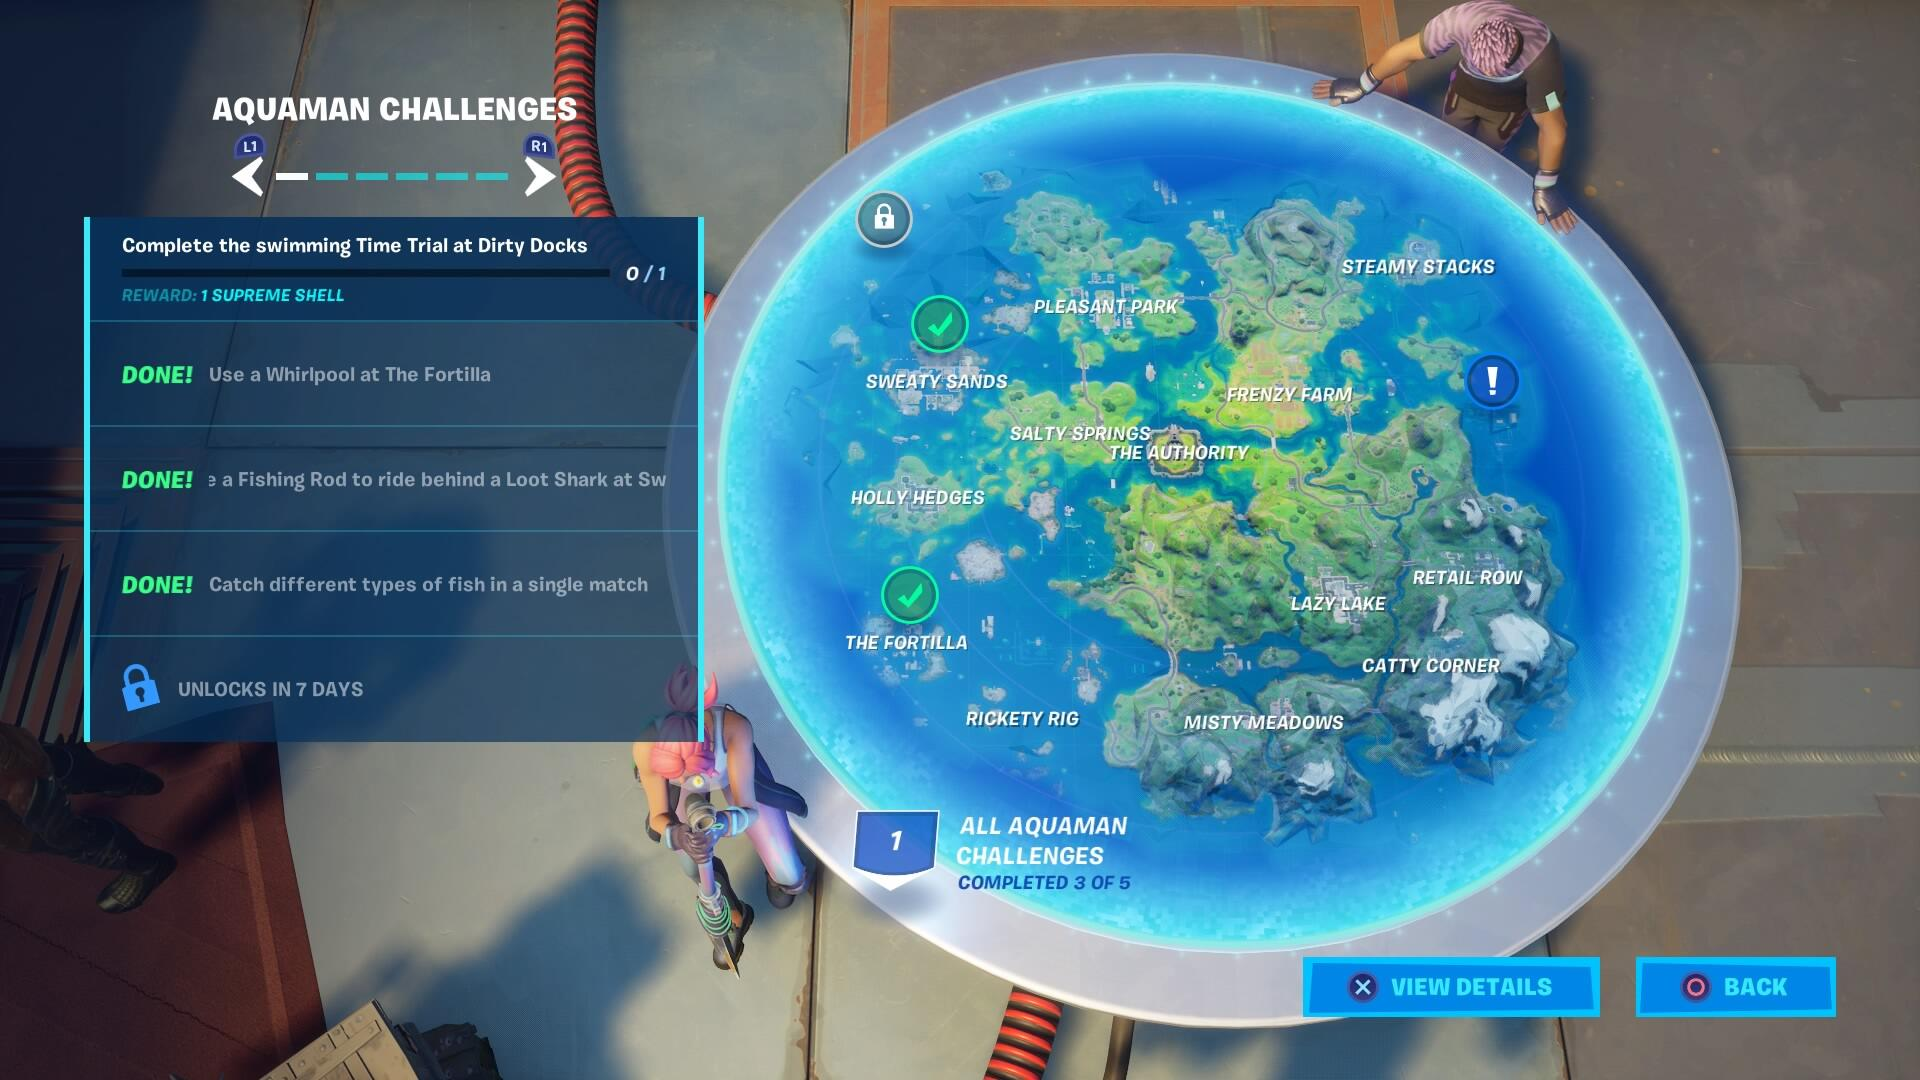 Fortnite Aquaman Challenge